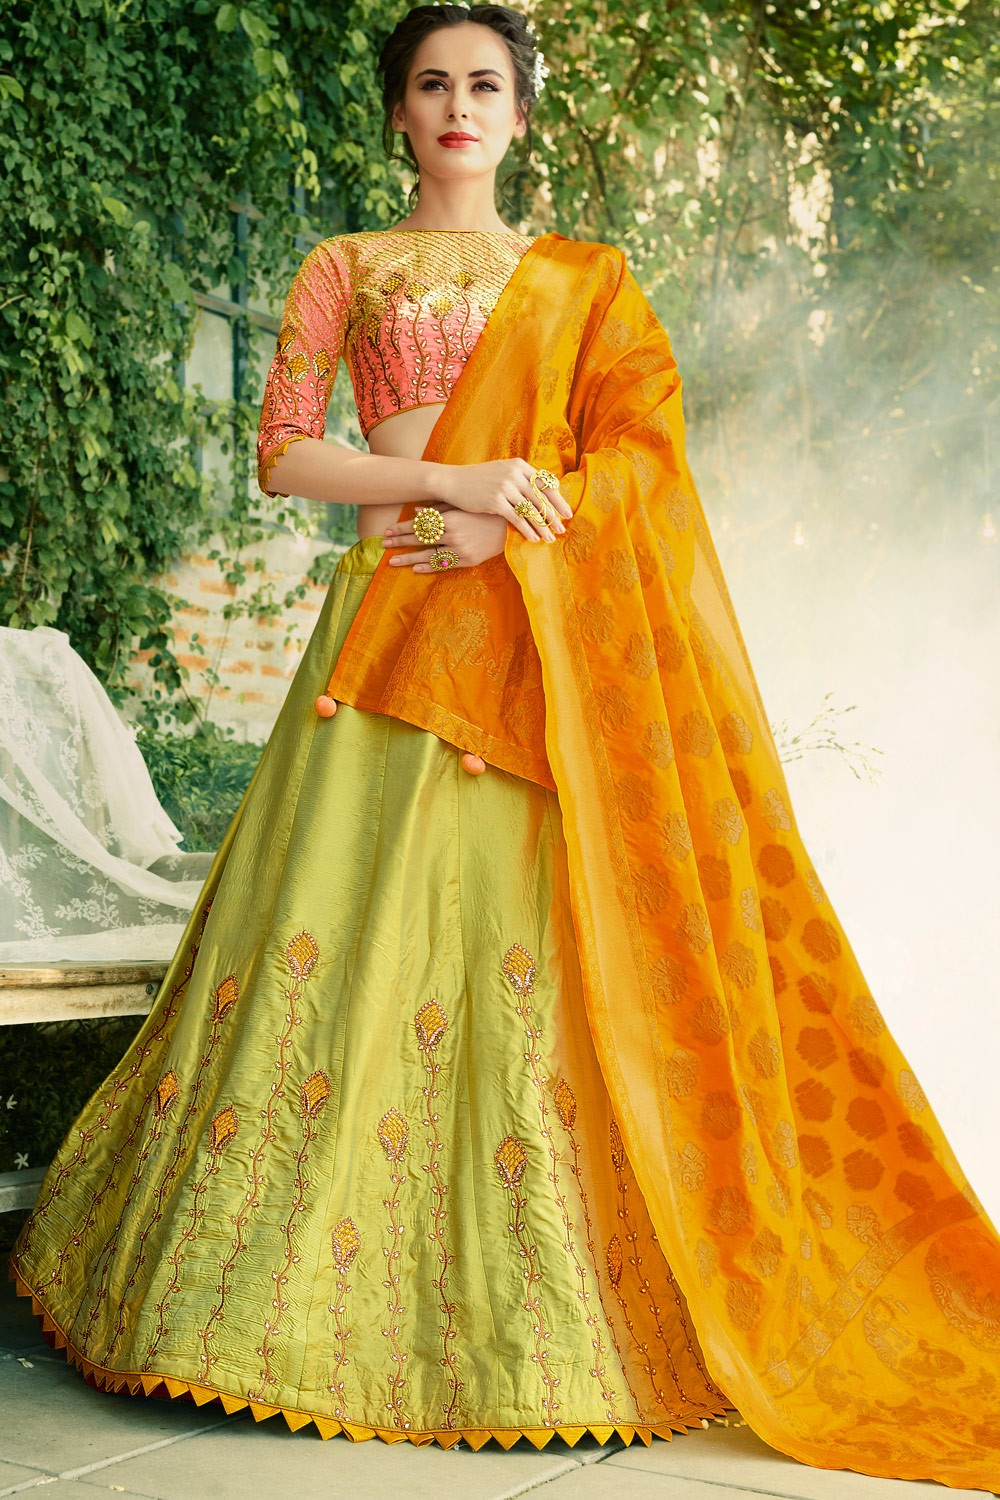 Paaneri Designer Light Green Color Partywear Wedding Raw Silk Girlish Unstich Lehenga With Banarasi Silk Pallu-Product Code-17119040802